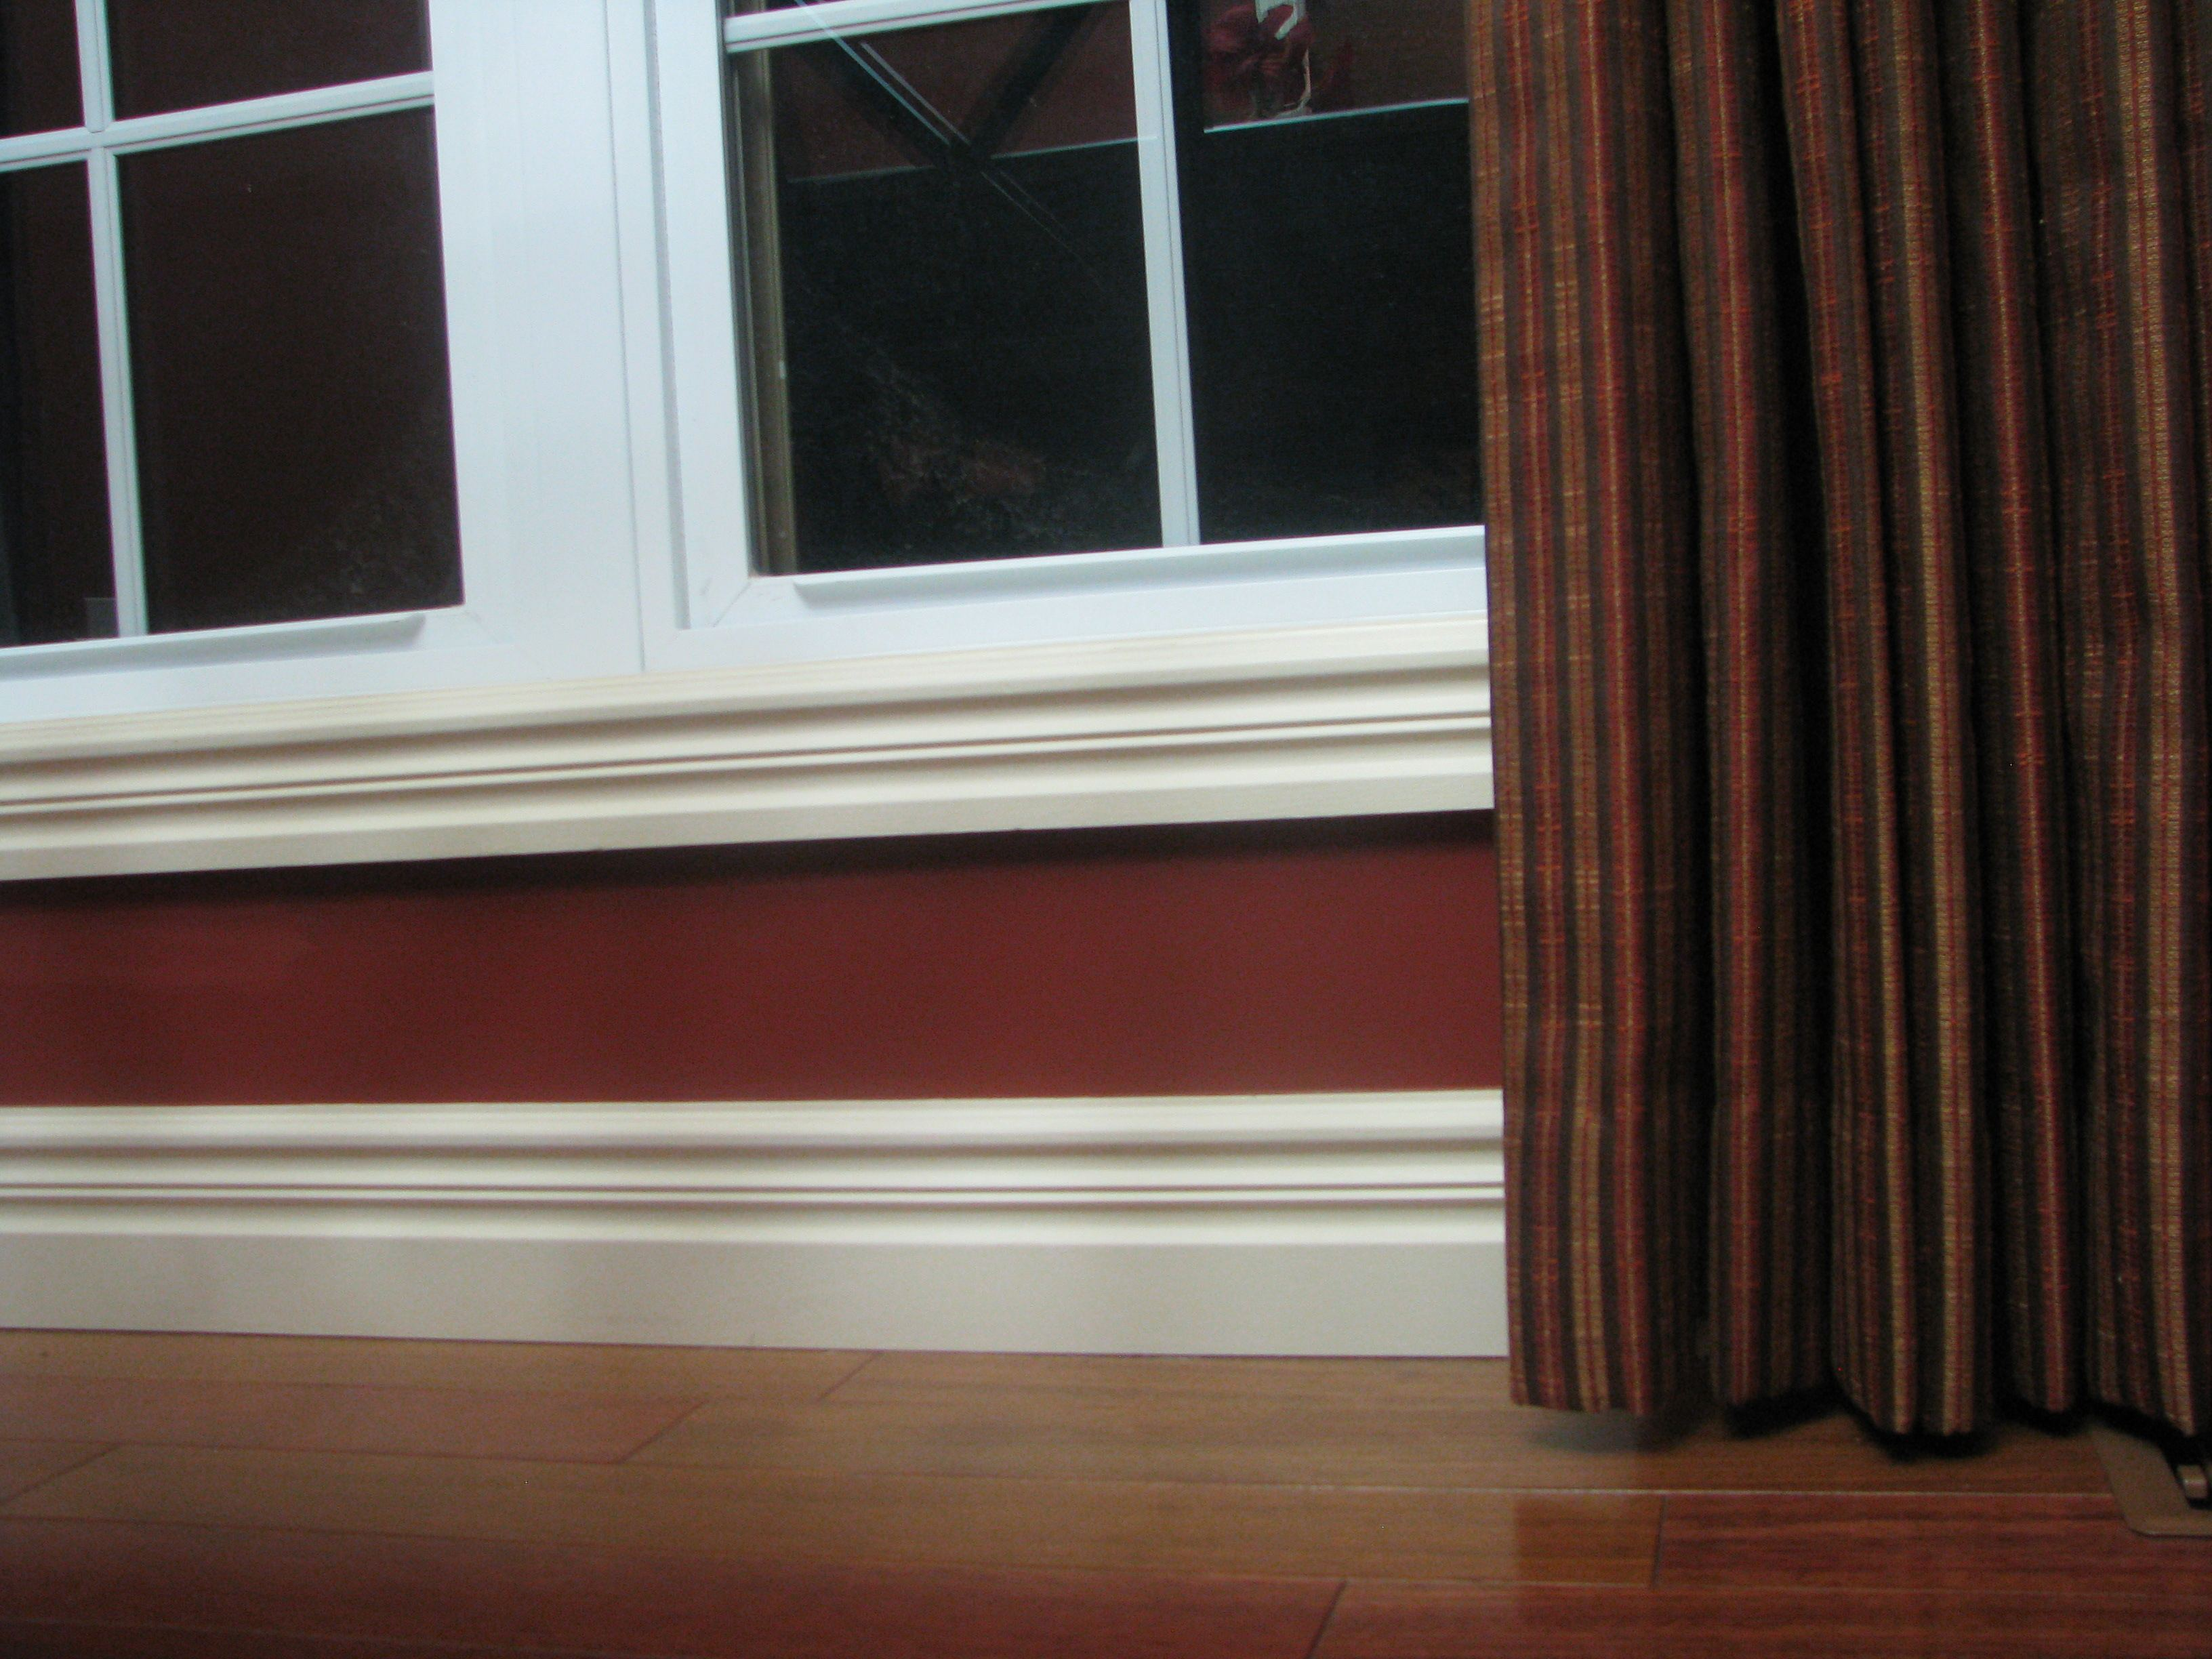 or vintage baseboard best style wanted would ideas baseboards pin trim great diy cottage more be that home a pictures you remodel traditional add floor in to this molding